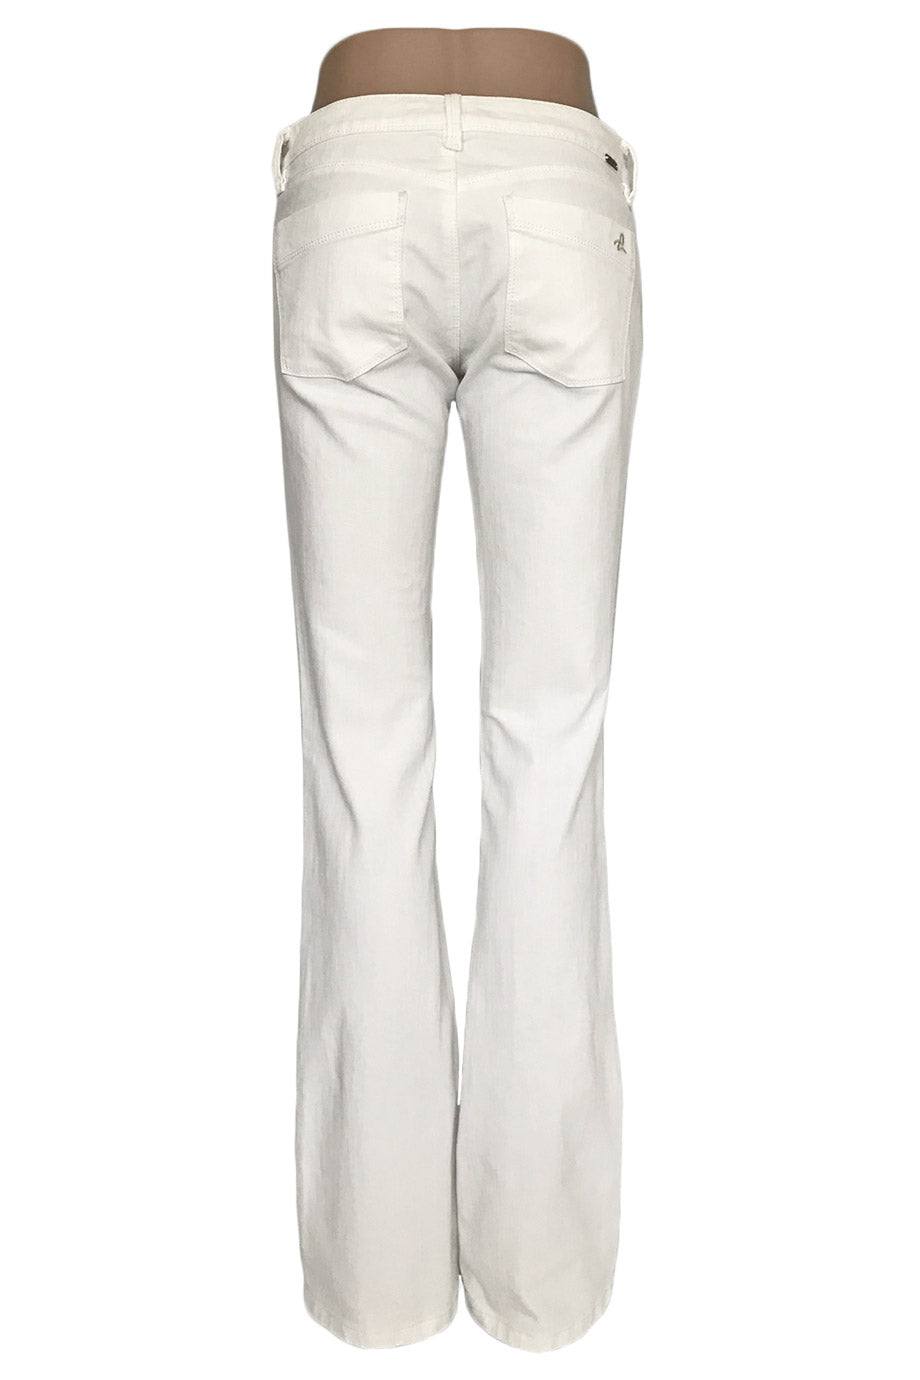 DL1961 White 4-Way Stretch Denim Cindy Slim Bootcut Jeans / Sz 27-Style Therapy